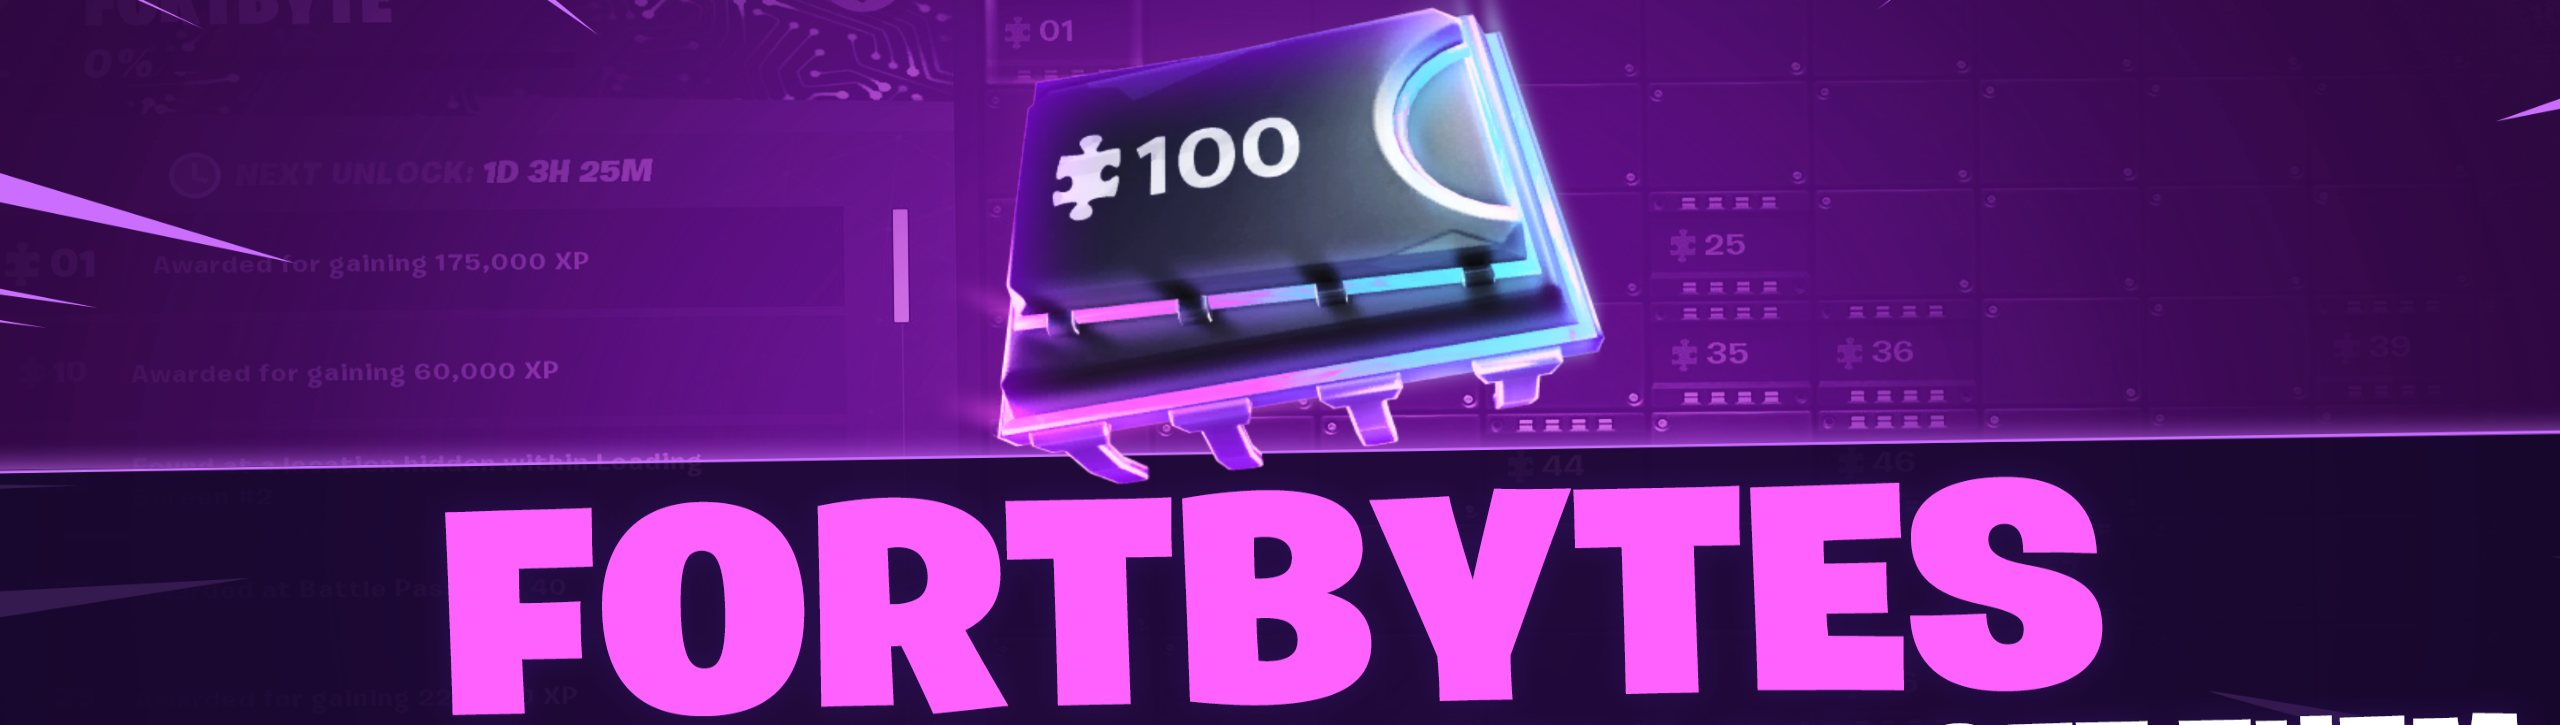 Collect Fortbytes Fortnite Season 9 4K Background